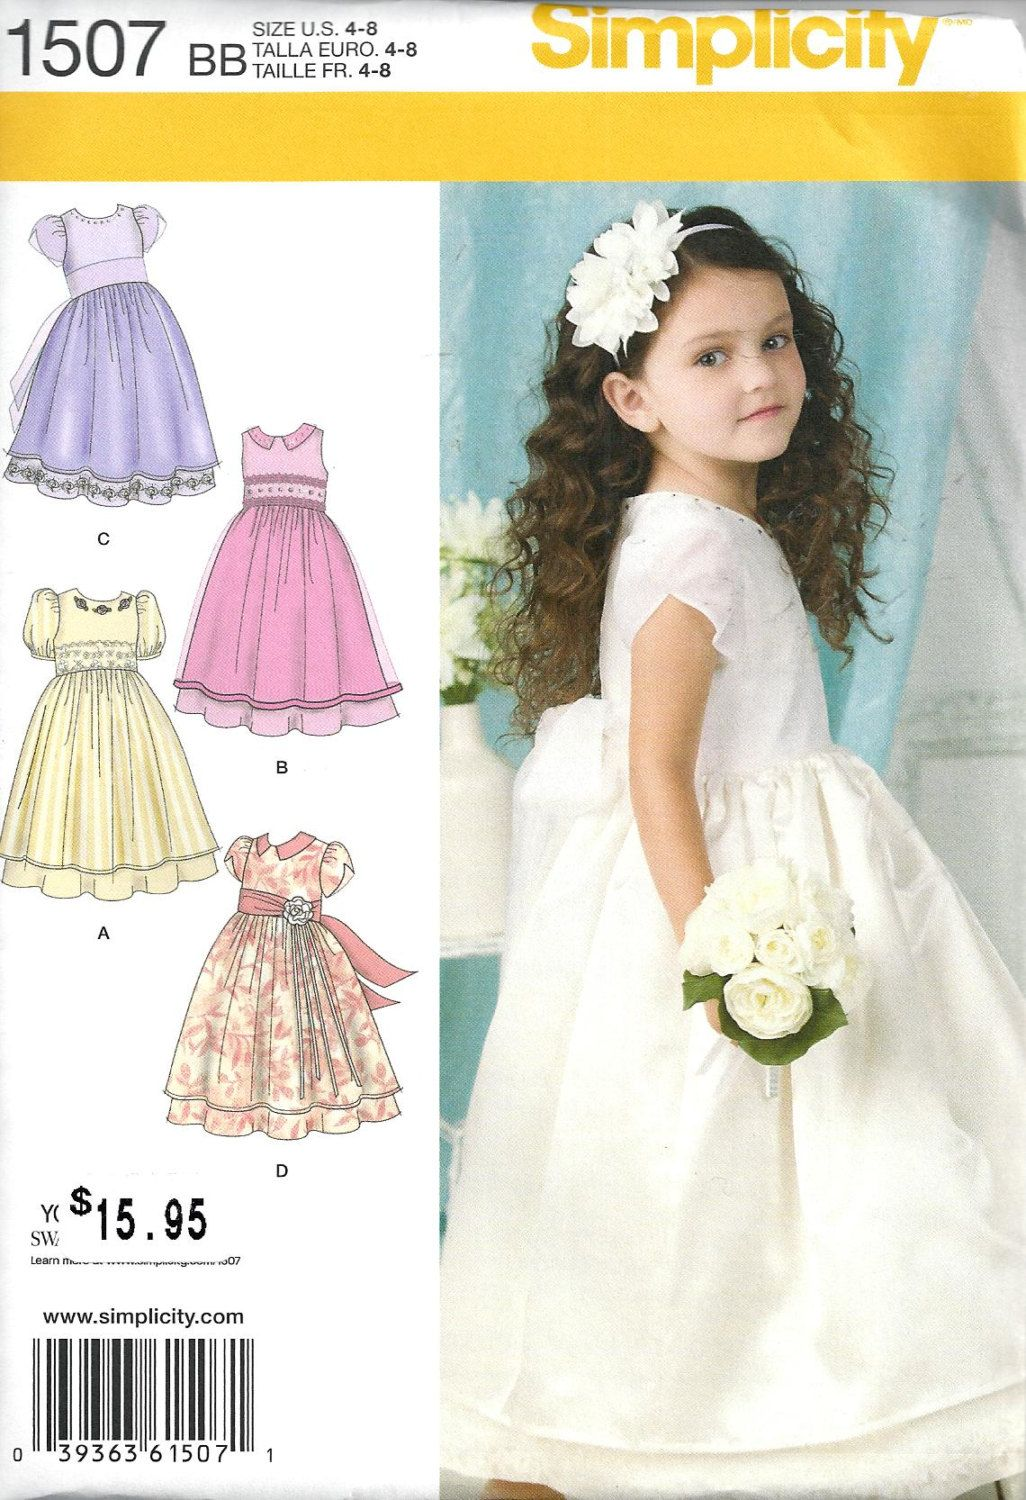 CHILD 3~6 GIRL 7~14 FLOWER GIRL~1ST COMMUNION MAKE FANCY DRESS SEWING PATTERN